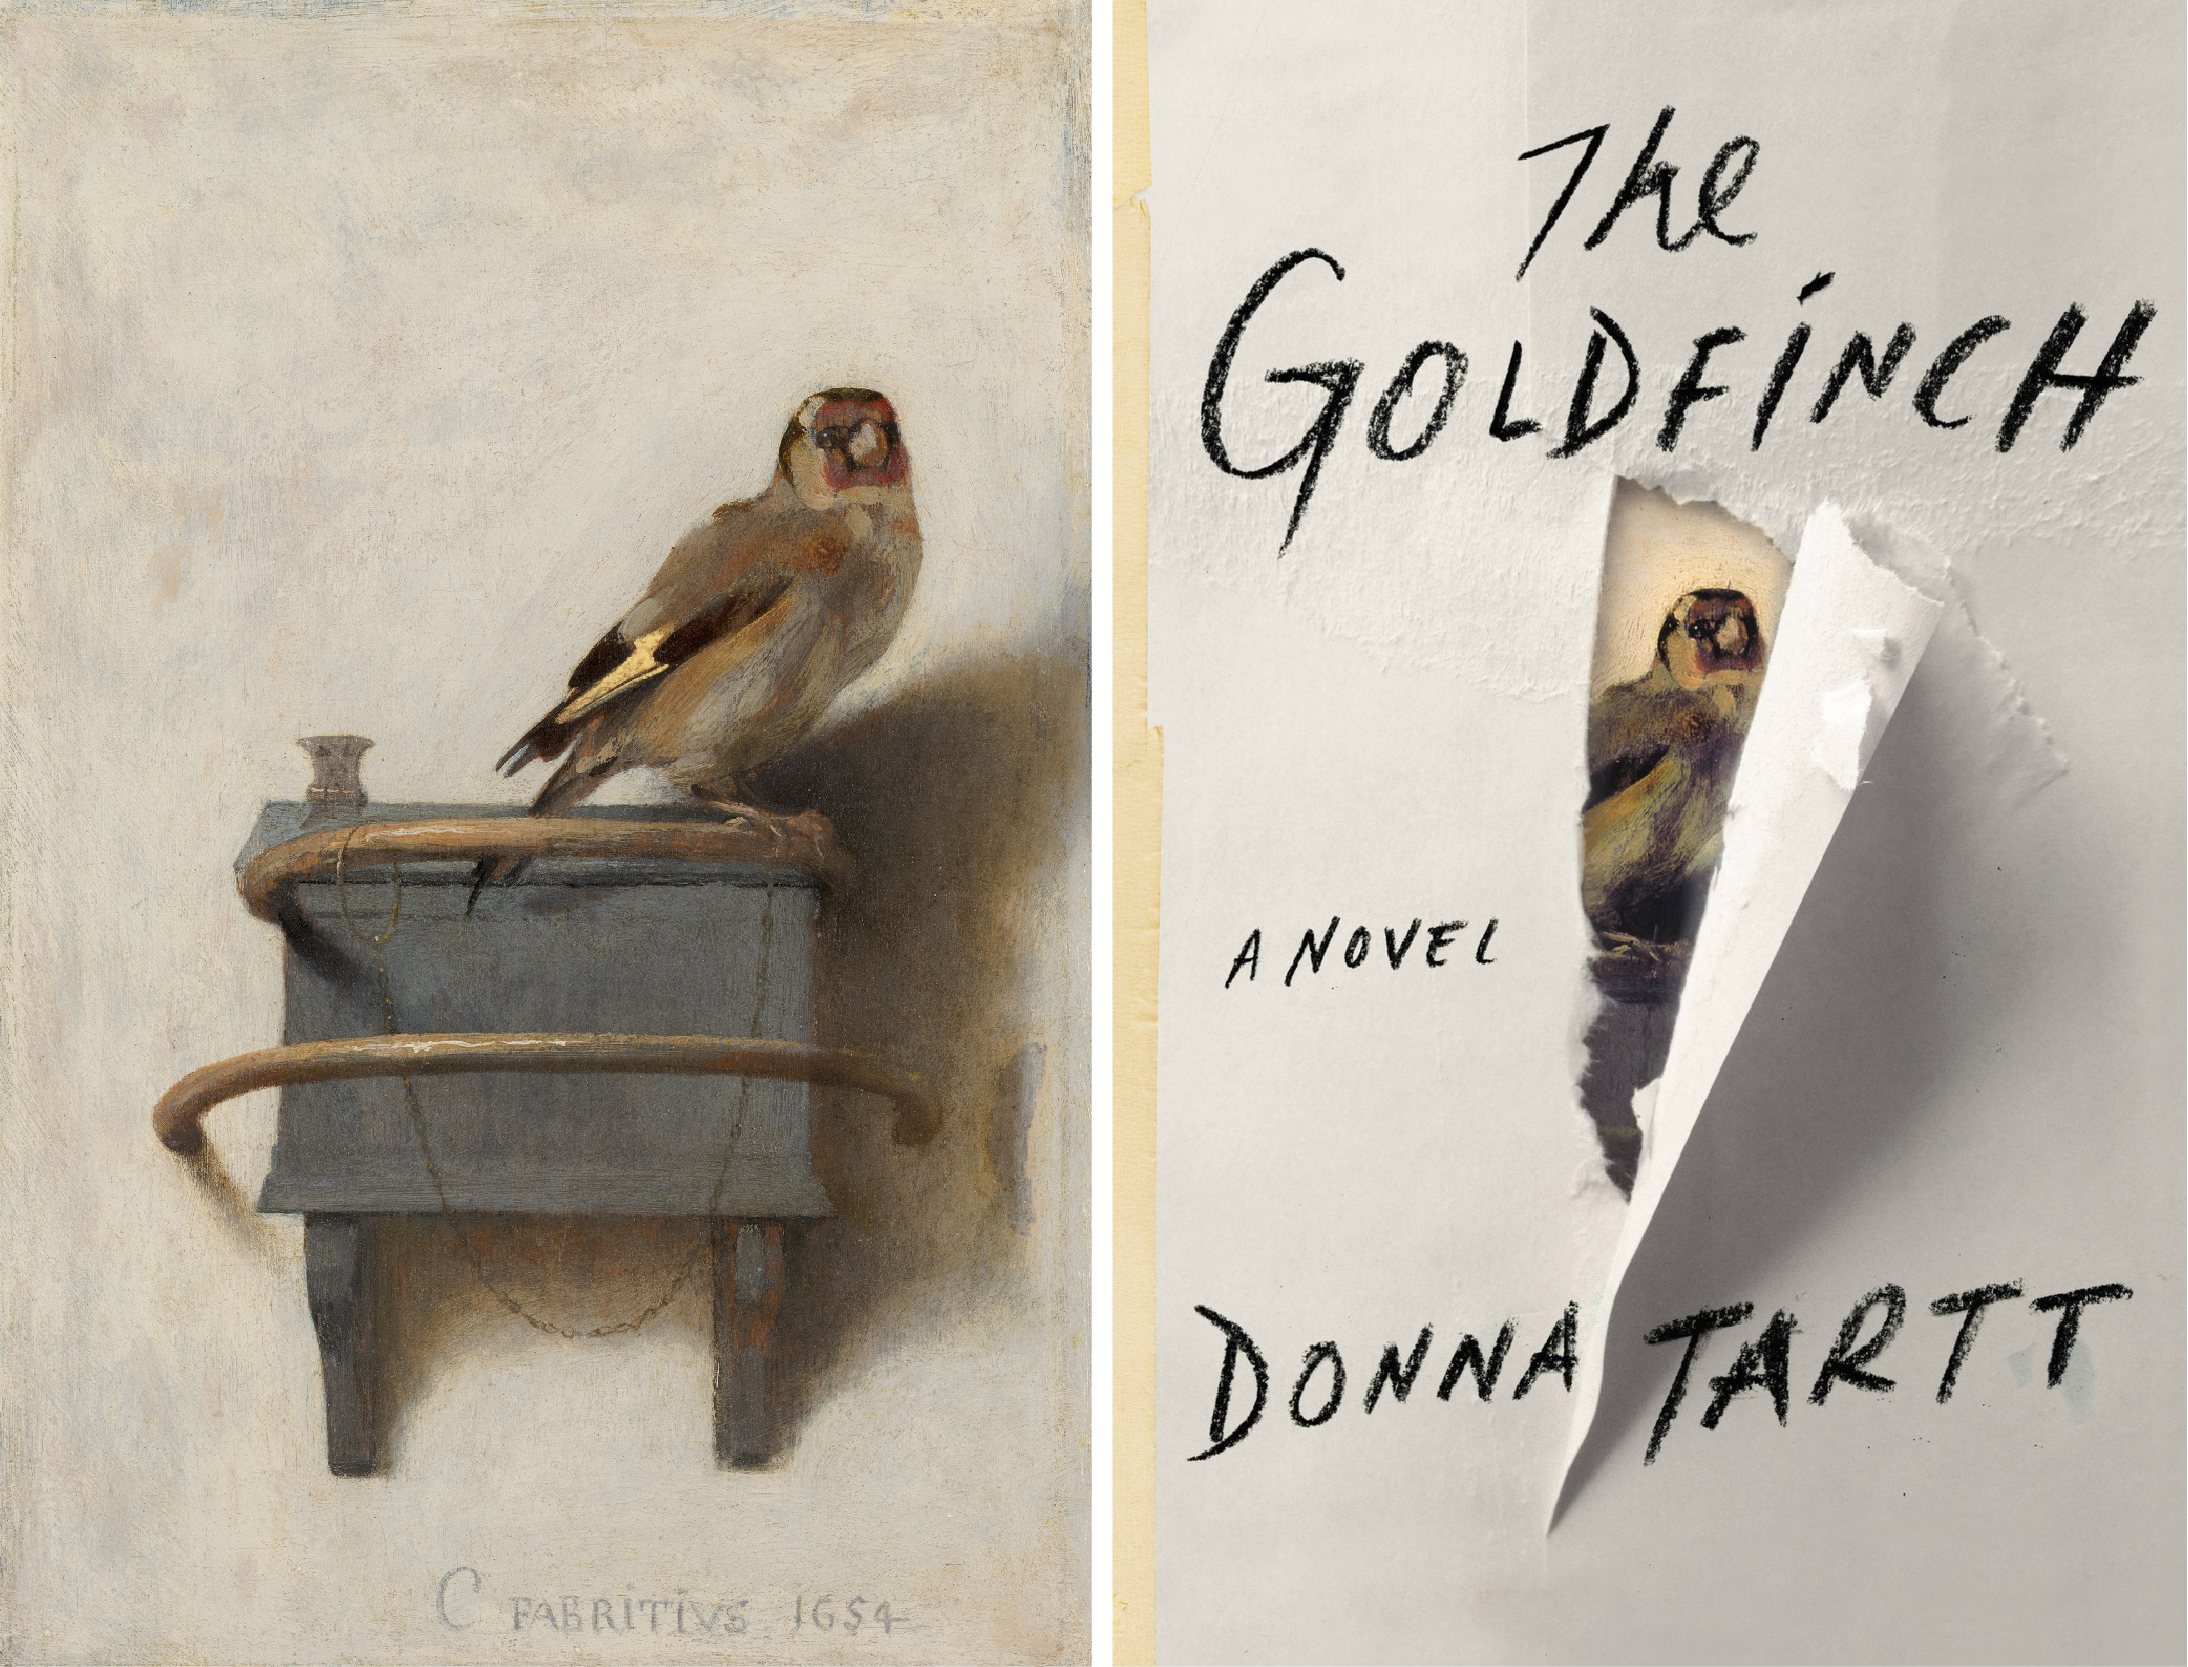 We didn't realize until later that The Goldfinch was based on an actual painting:  The Goldfinch by Carel Fabritius.